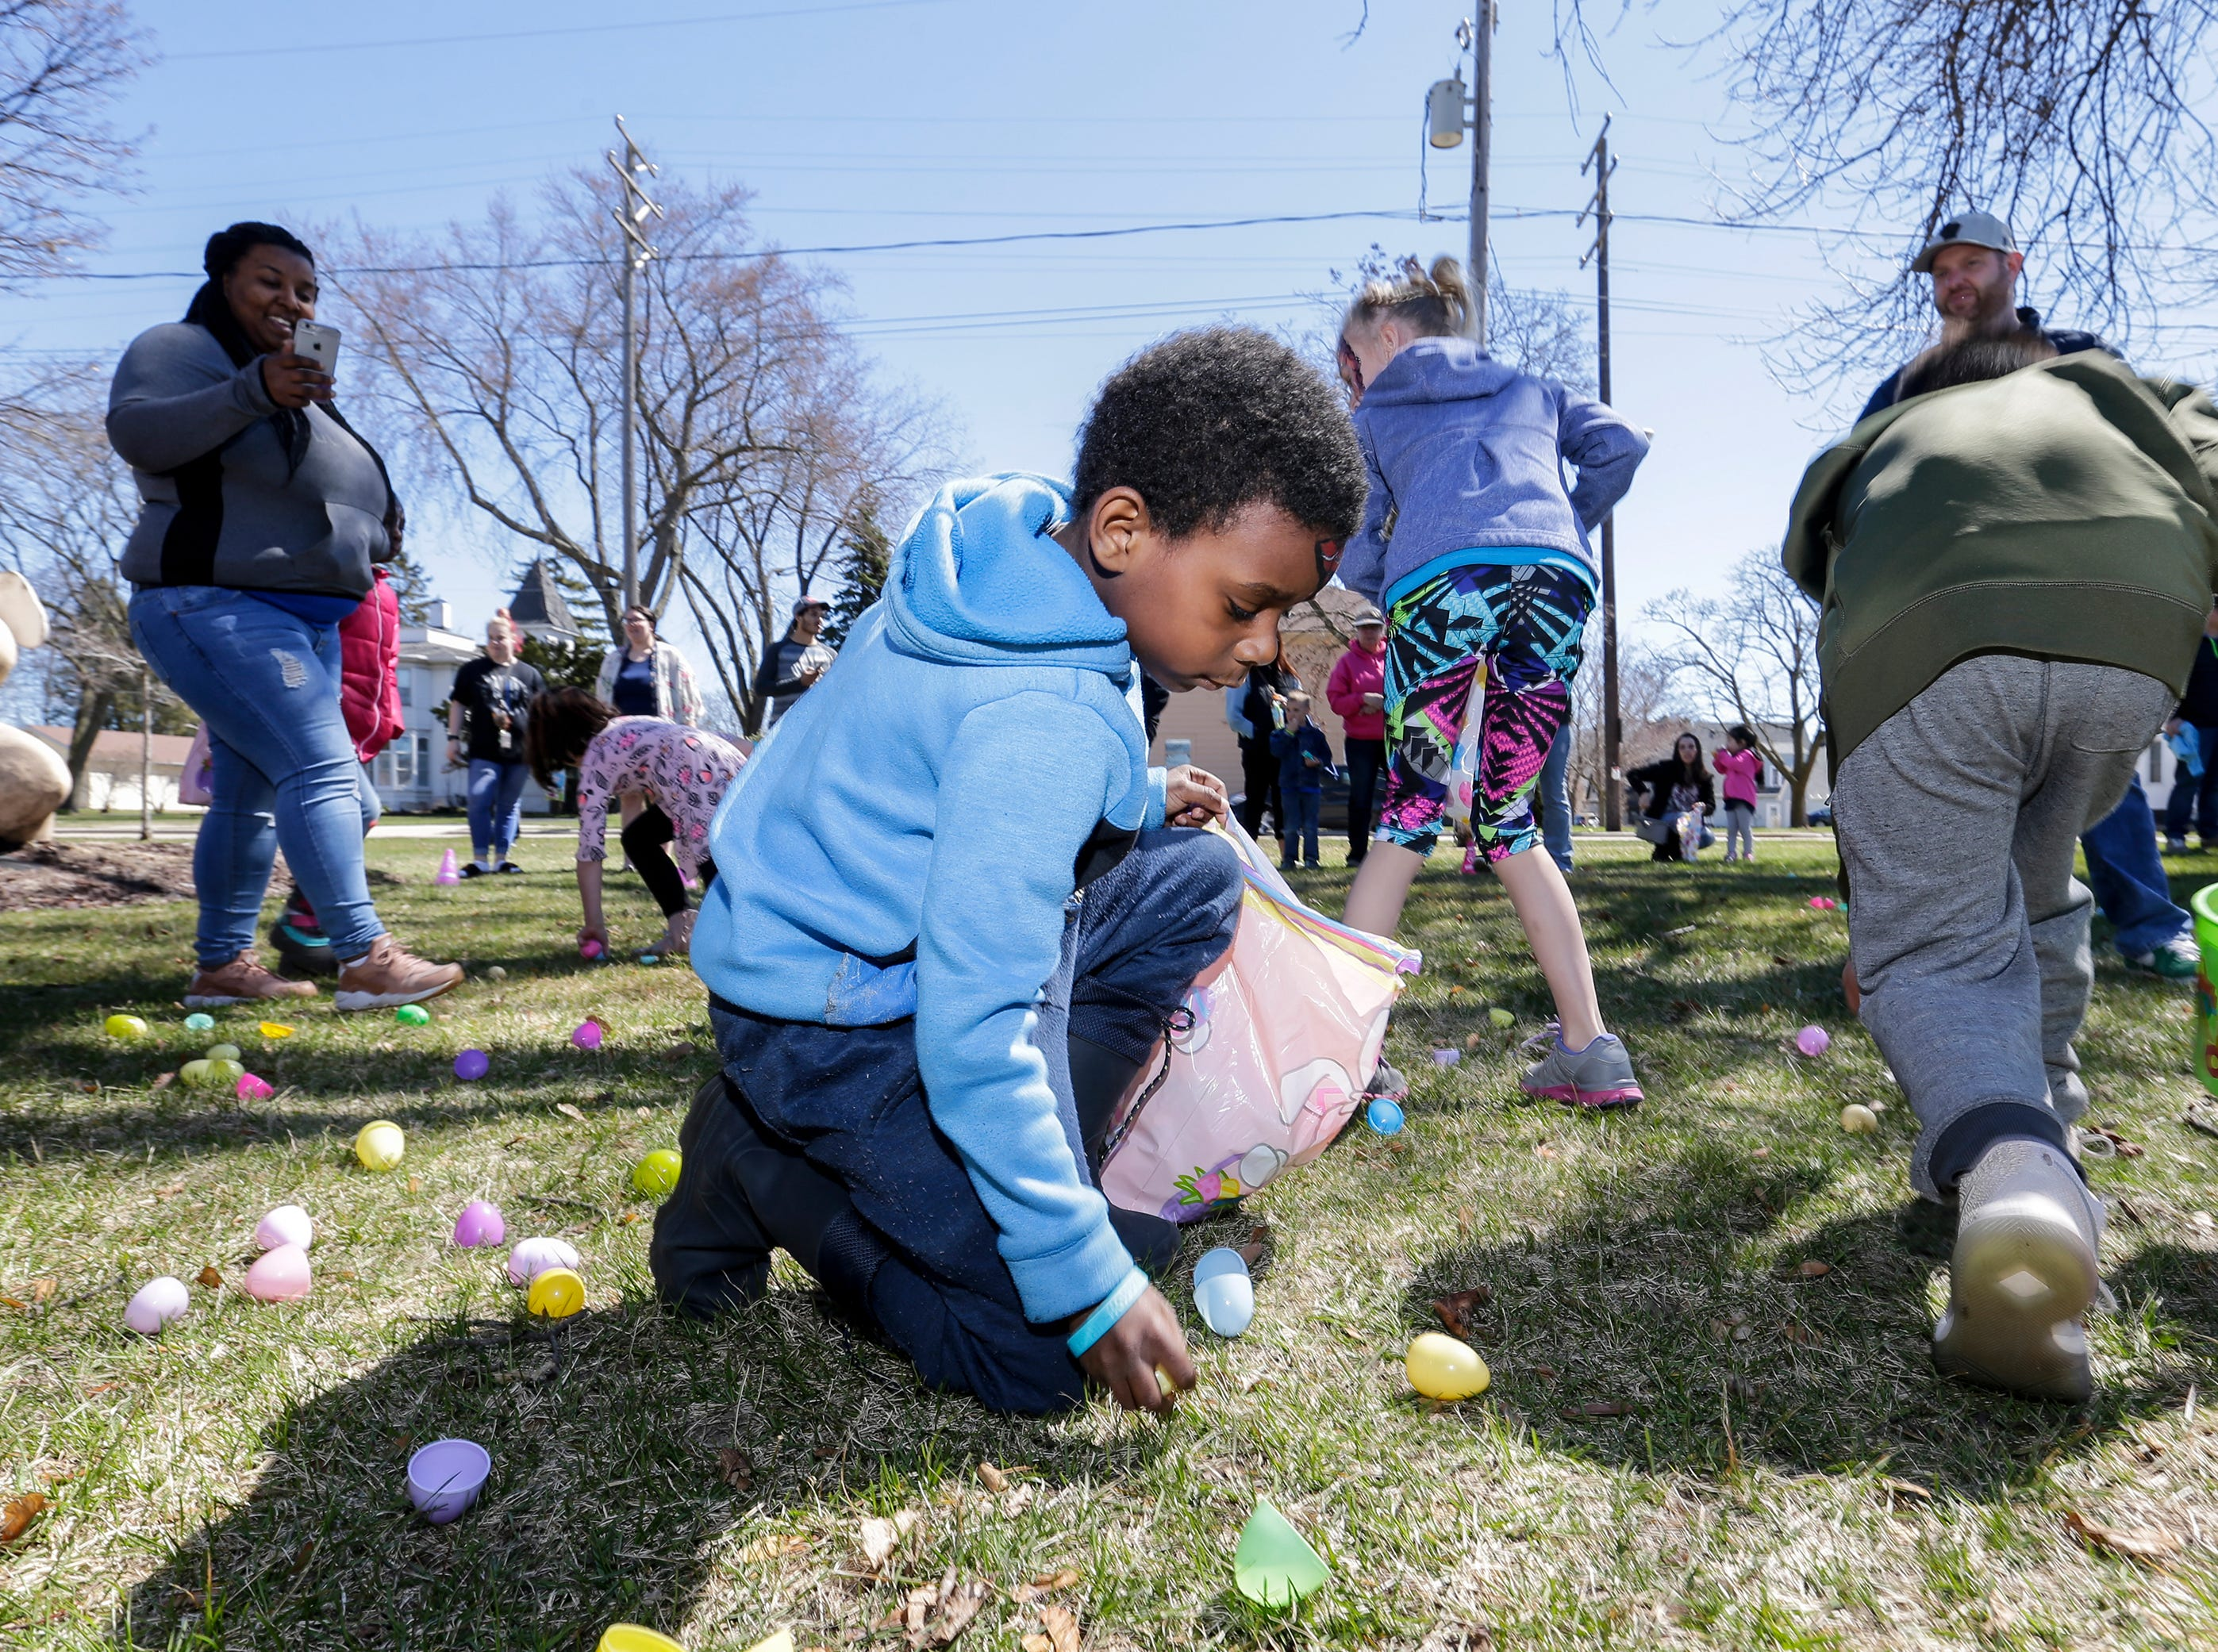 Deshawn Williams, 7, gathers plastic Easter eggs during the Easter Eggstravaganza at Citizen Park Saturday, April 20, 2019, in Manitowoc, Wis. Joshua Clark/USA TODAY NETWORK-Wisconsin